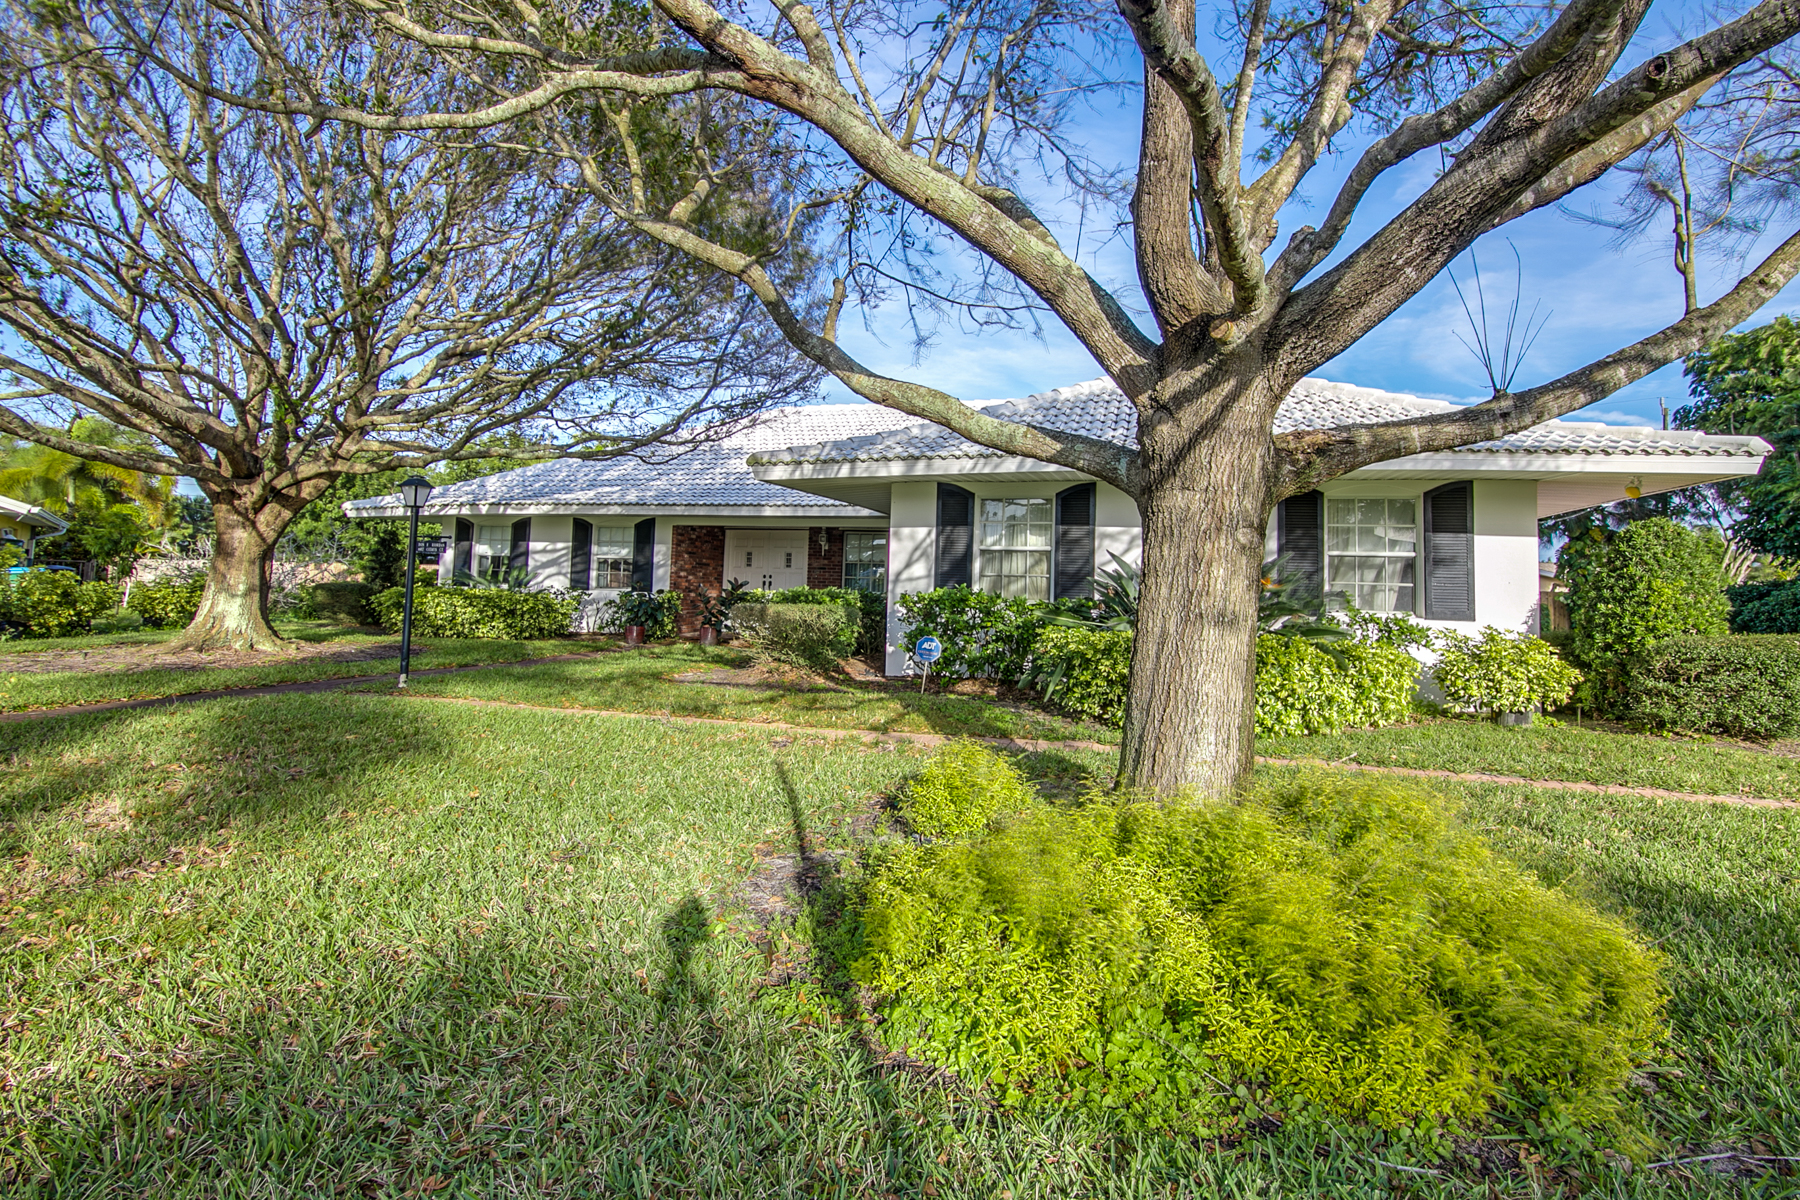 Single Family Home for Sale at Great Family Home on Large Homesite 607 Citrus Court Melbourne Beach, Florida, 32951 United States